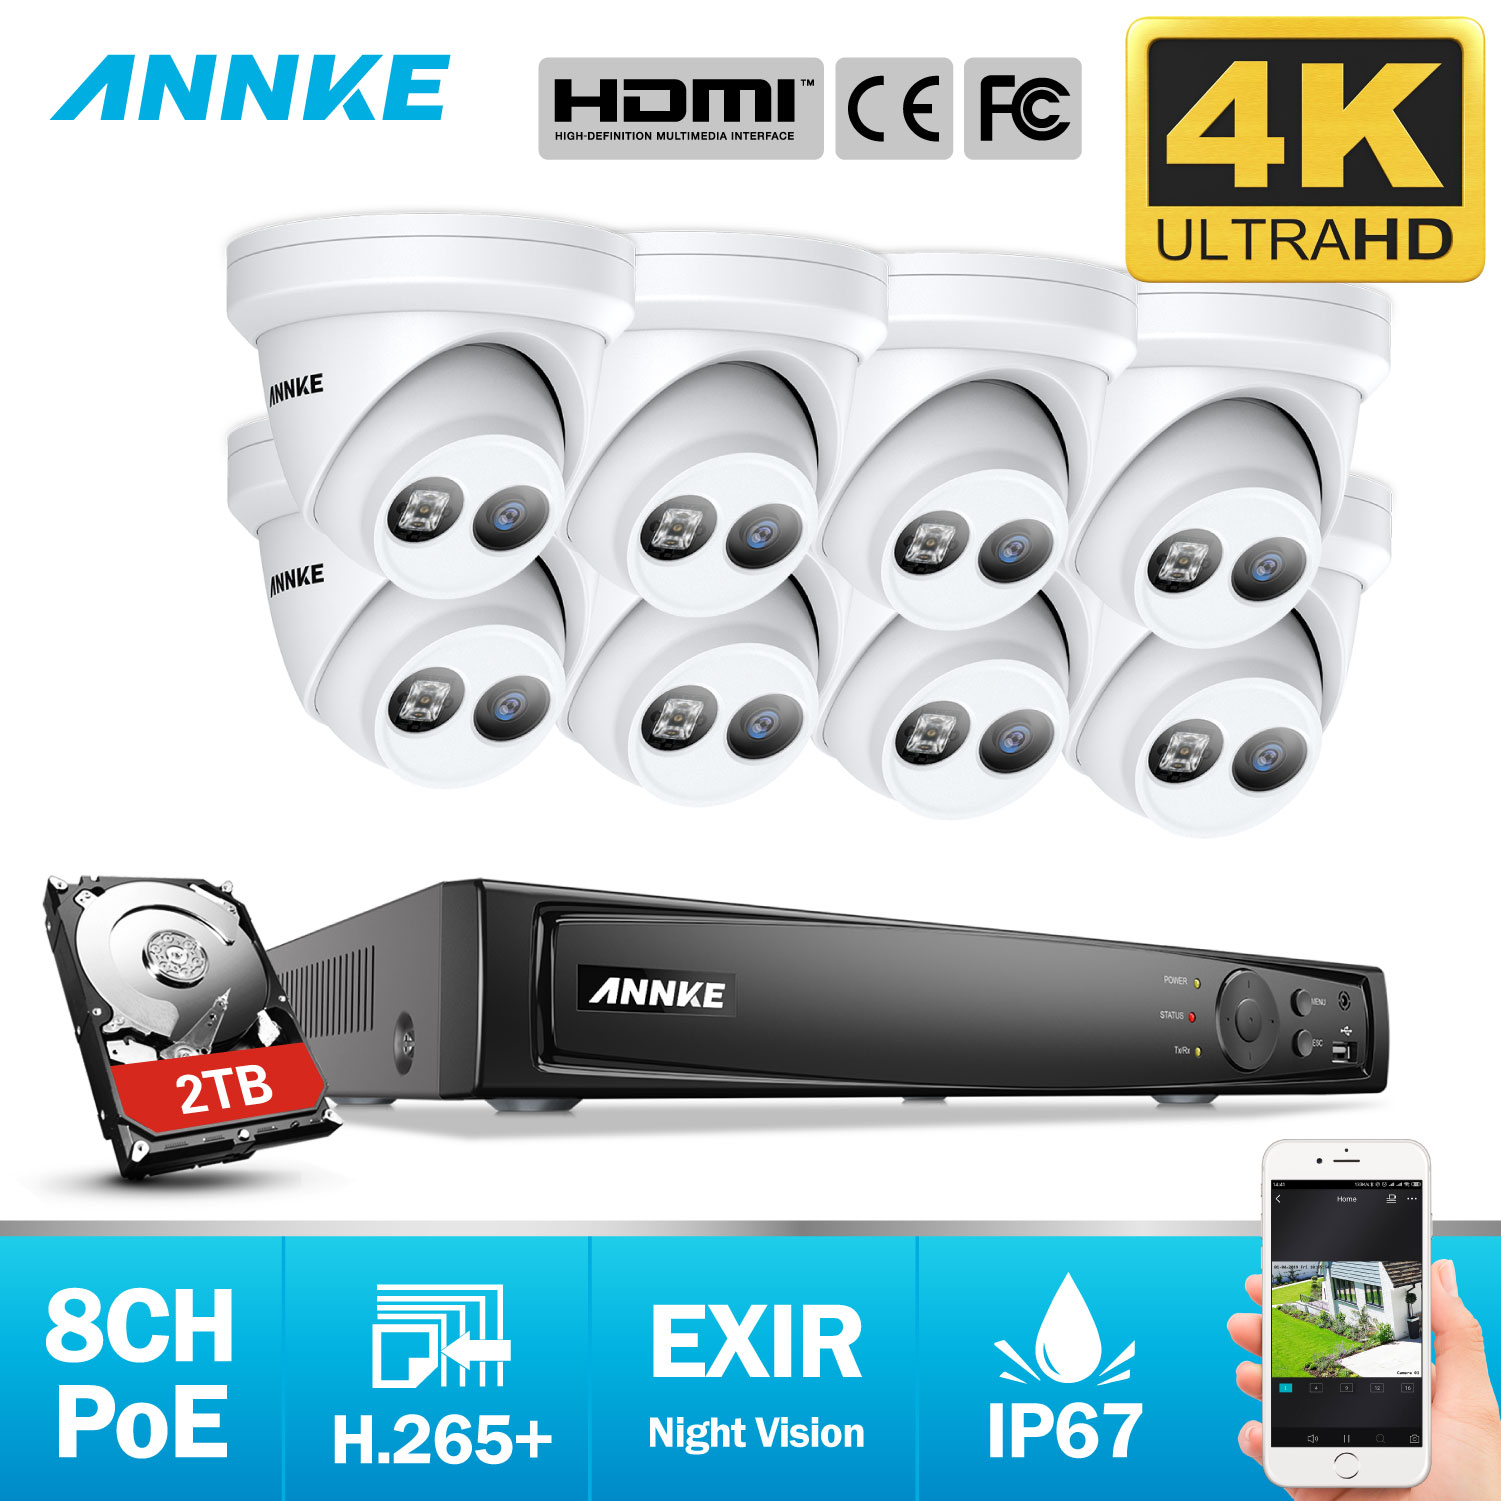 ANNKE 8CH 4K Ultra HD POE Network Video Security System 8MP H.265+ NVR With 8pcs 8MP Weatherproof IP Camera CCTV Security Kit-in Surveillance System from Security & Protection